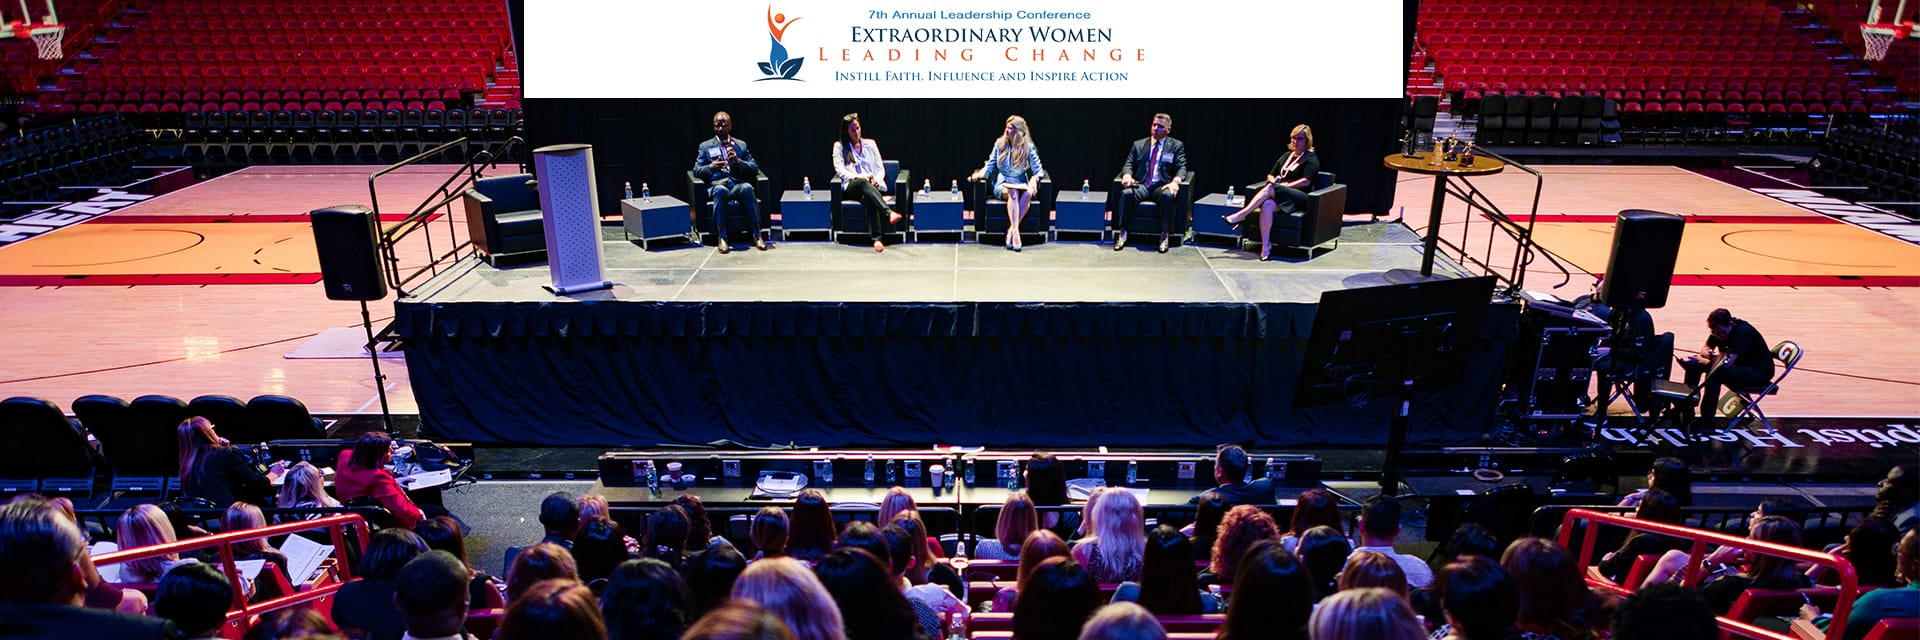 Extraordinary Women Leading Changer Leadership Conference